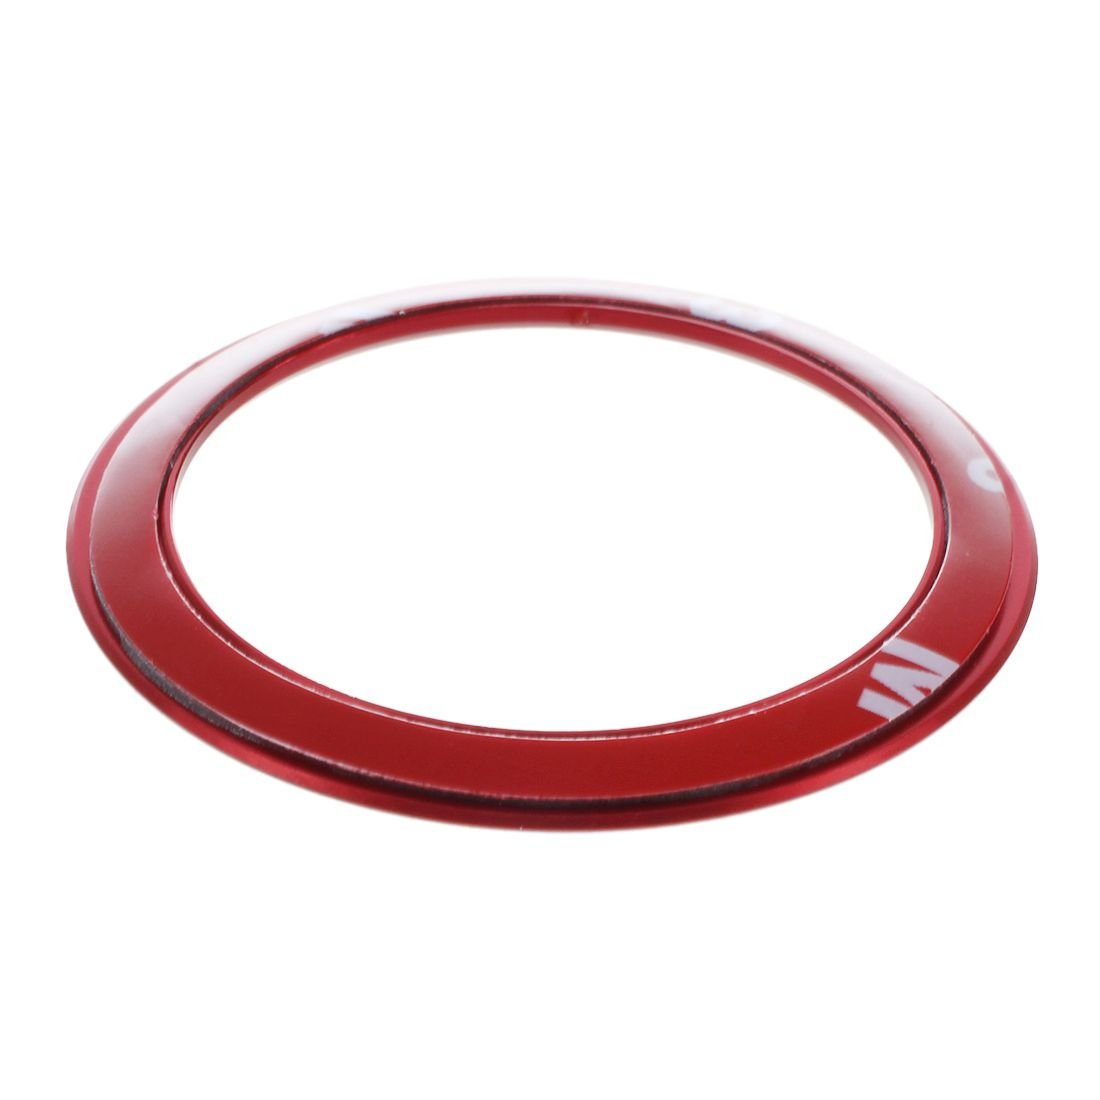 R TOOGOO For BMW E34 E30 E60 E36 E39 E46 E30 E60 E90 E92 F10 F30 F25 Ca Steering Wheel Circle Covers Interior Car Accessories Red